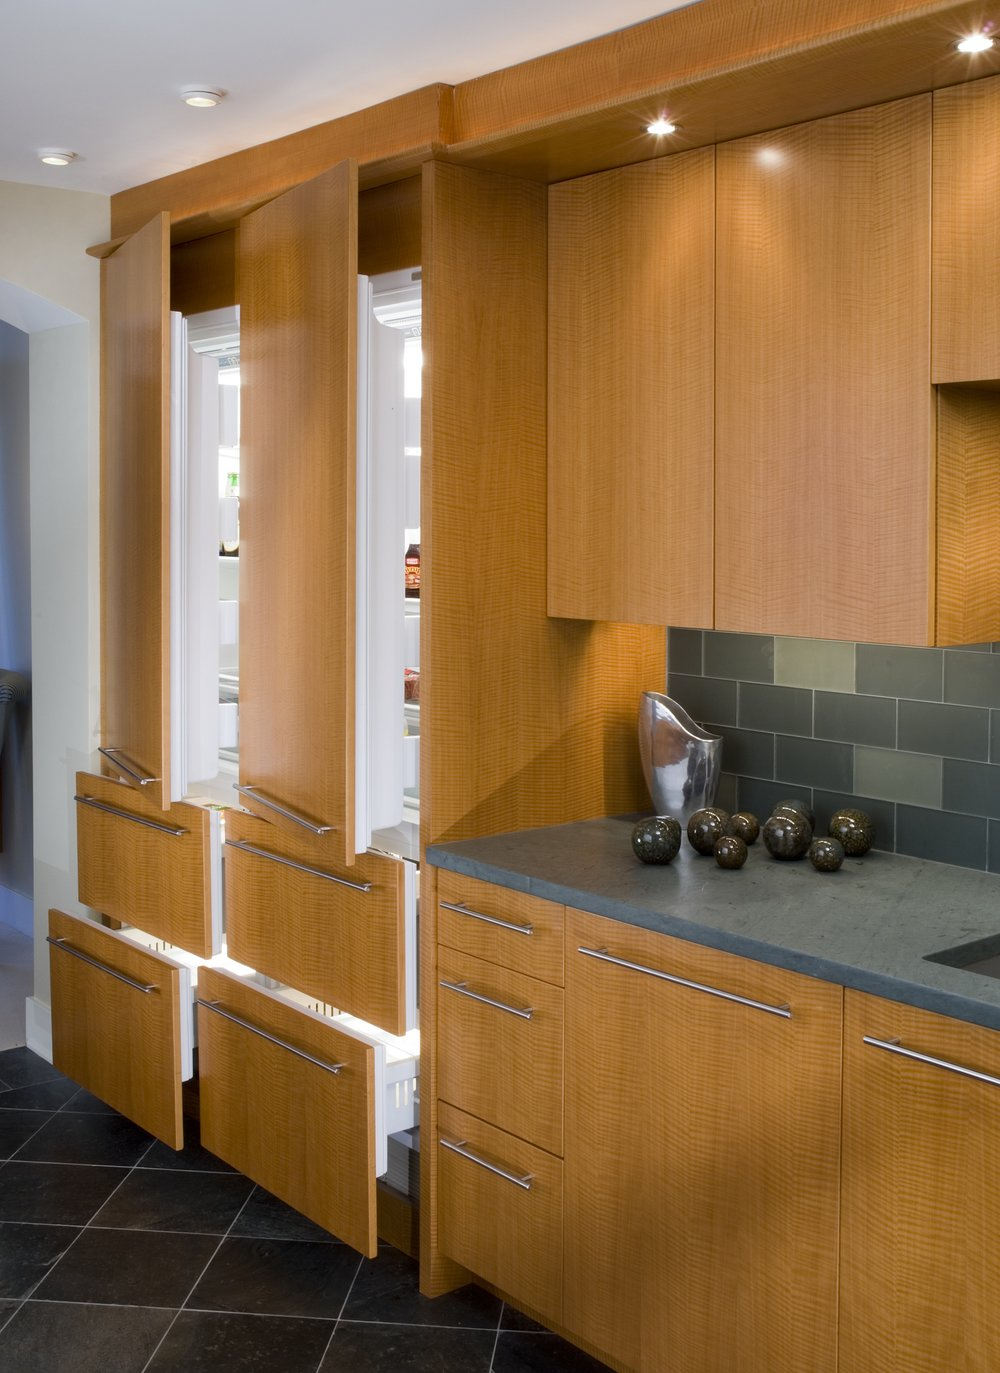 KBC_kitchen_bath_concepts_Kitchen_157.jpg